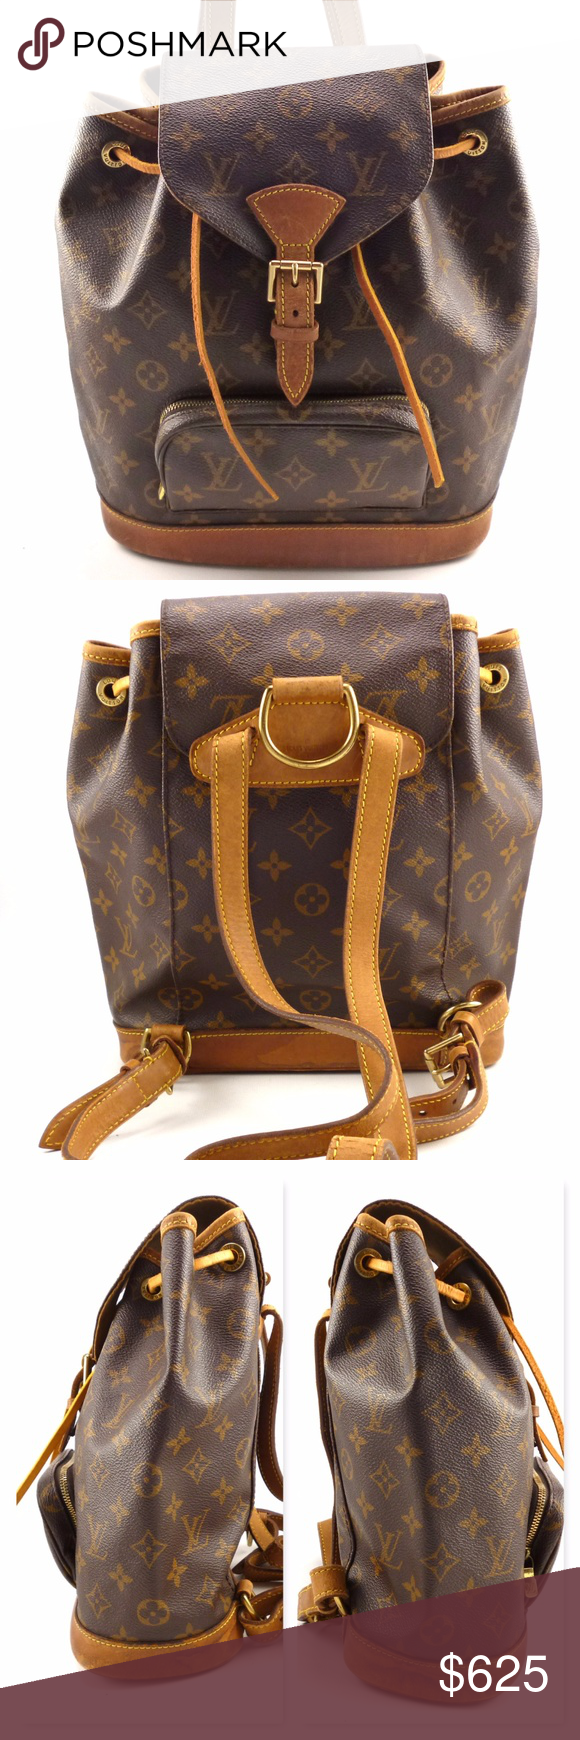 04aedd55554d Louis Vuitton Authentic Mini Montsouris Backpack Authentic Louis Vuitton  Mini Montsouris Monogram Canvas Backpack. Beautiful